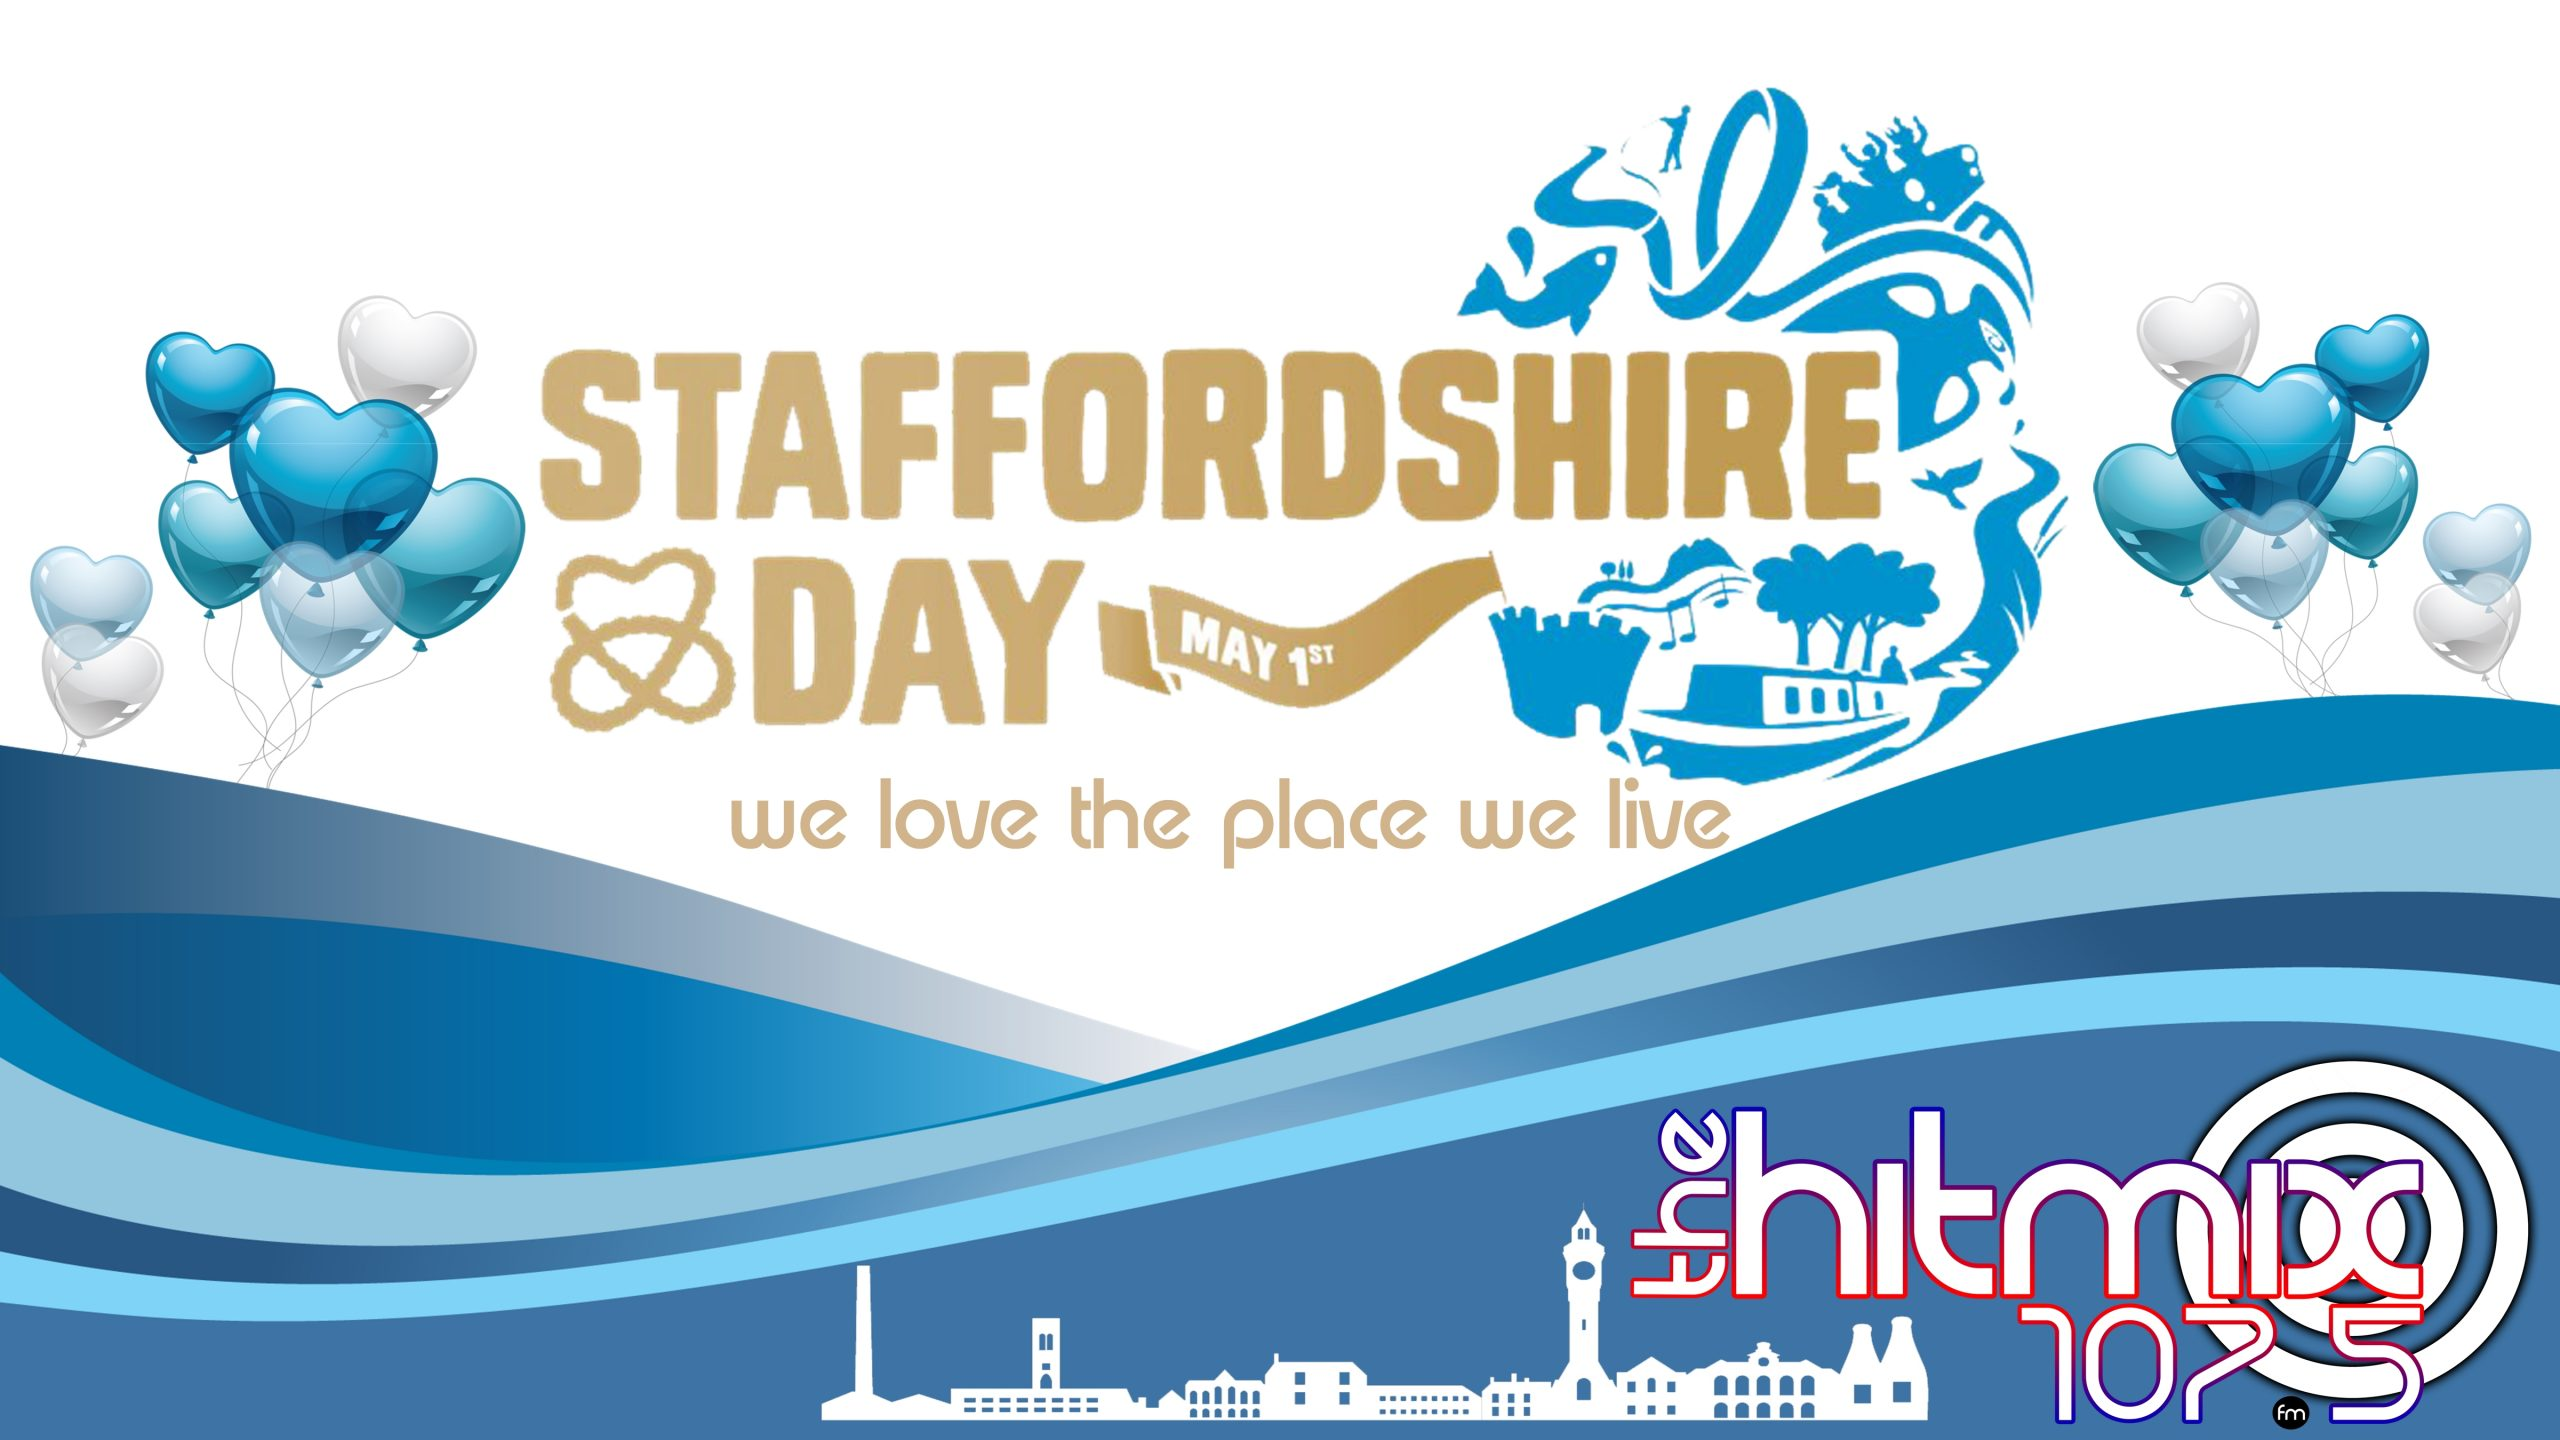 HM Staffordshire Day 21